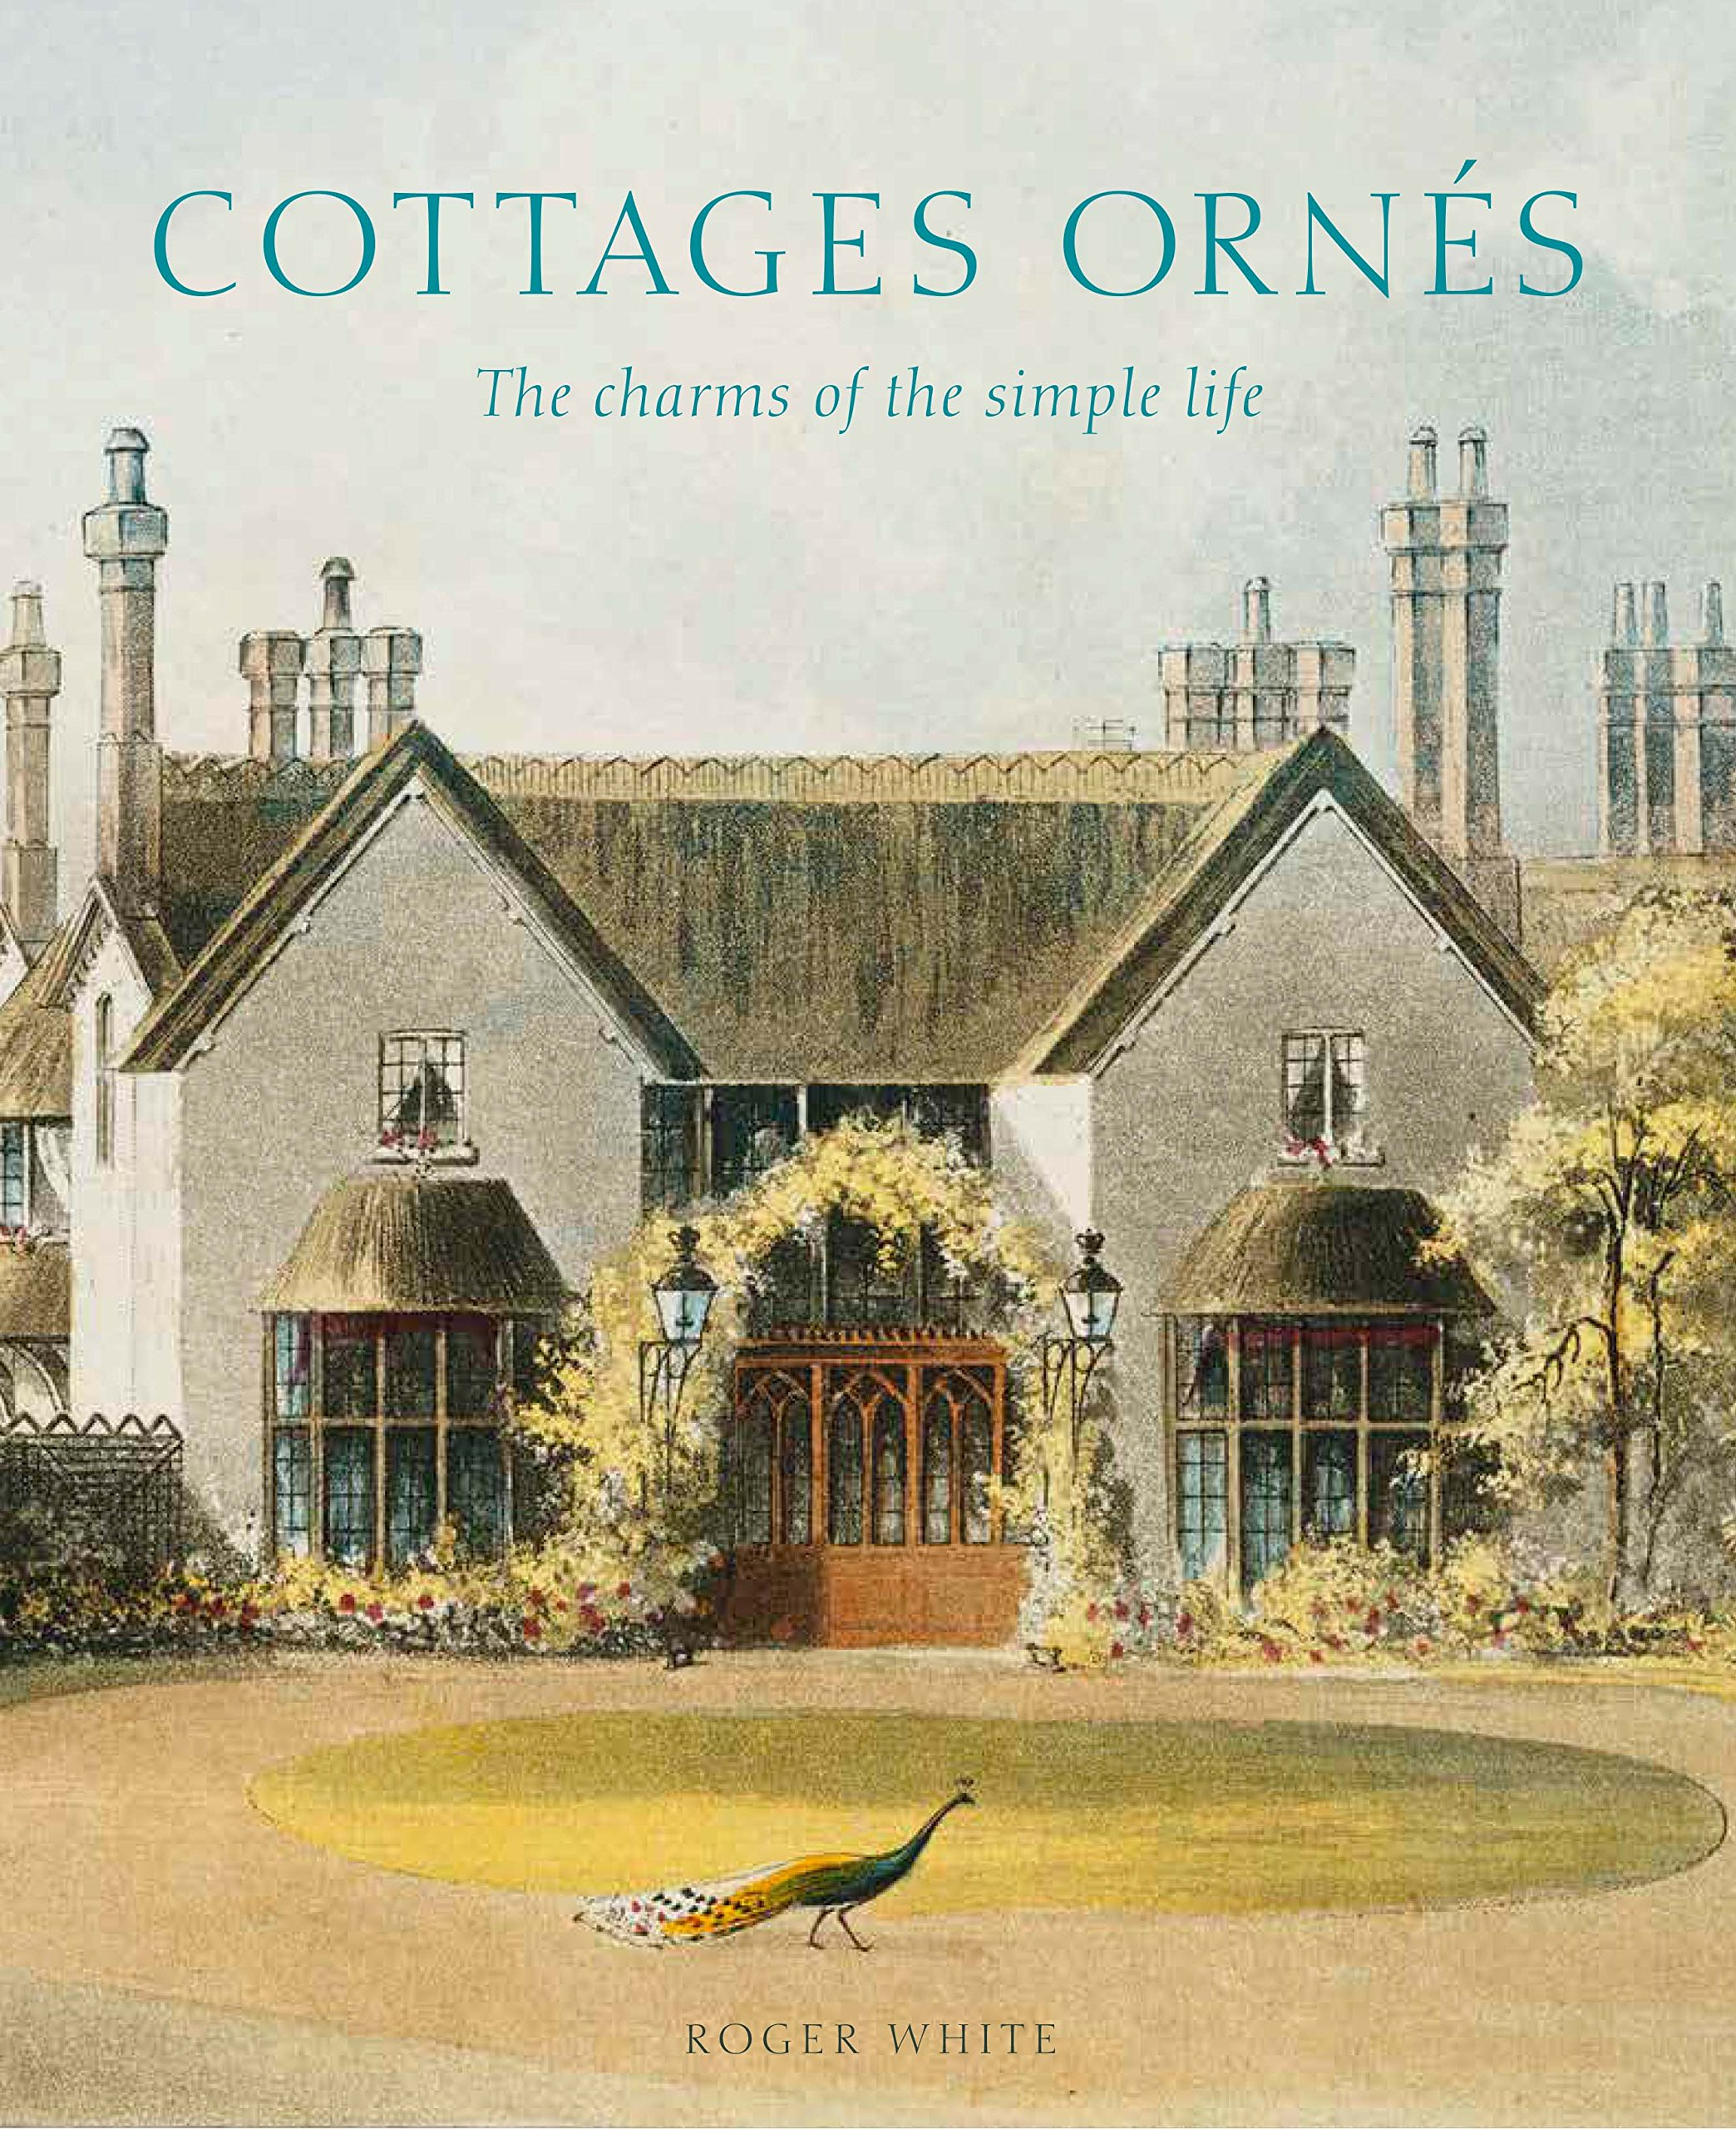 Cottages ornés: The Charms of the Simple Life by Yale University Press (Image #1)